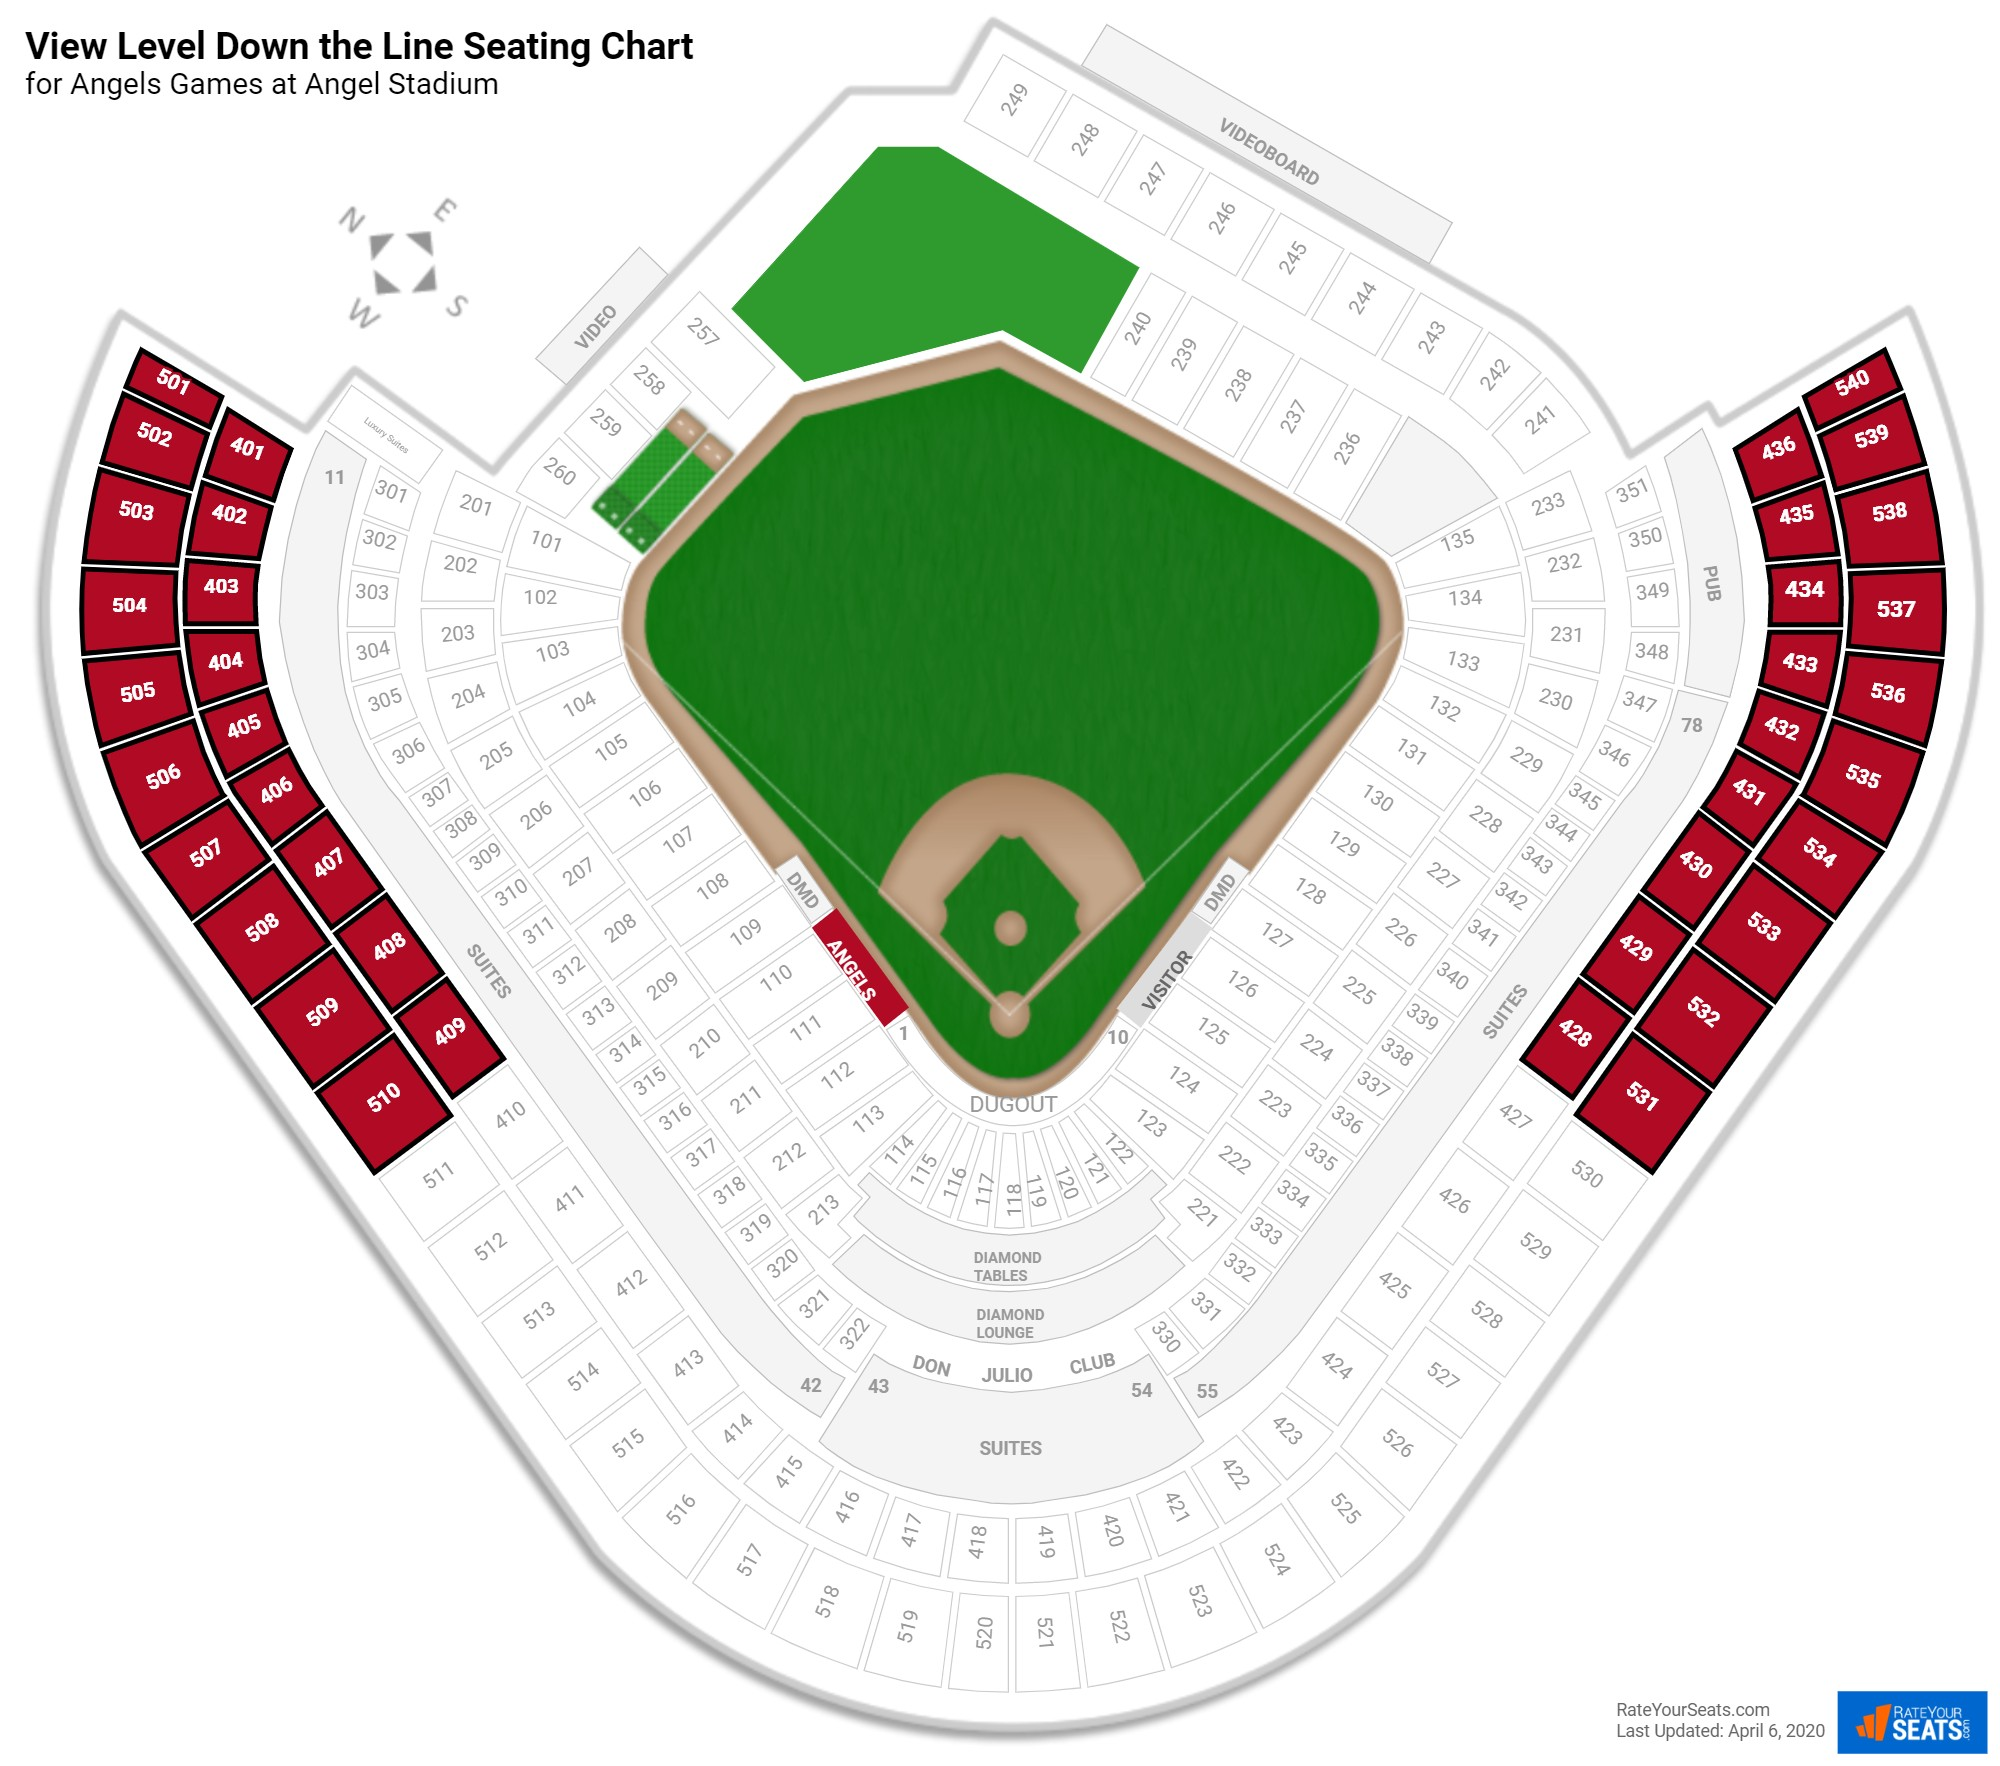 Angel Stadium View Level Down the Line seating chart